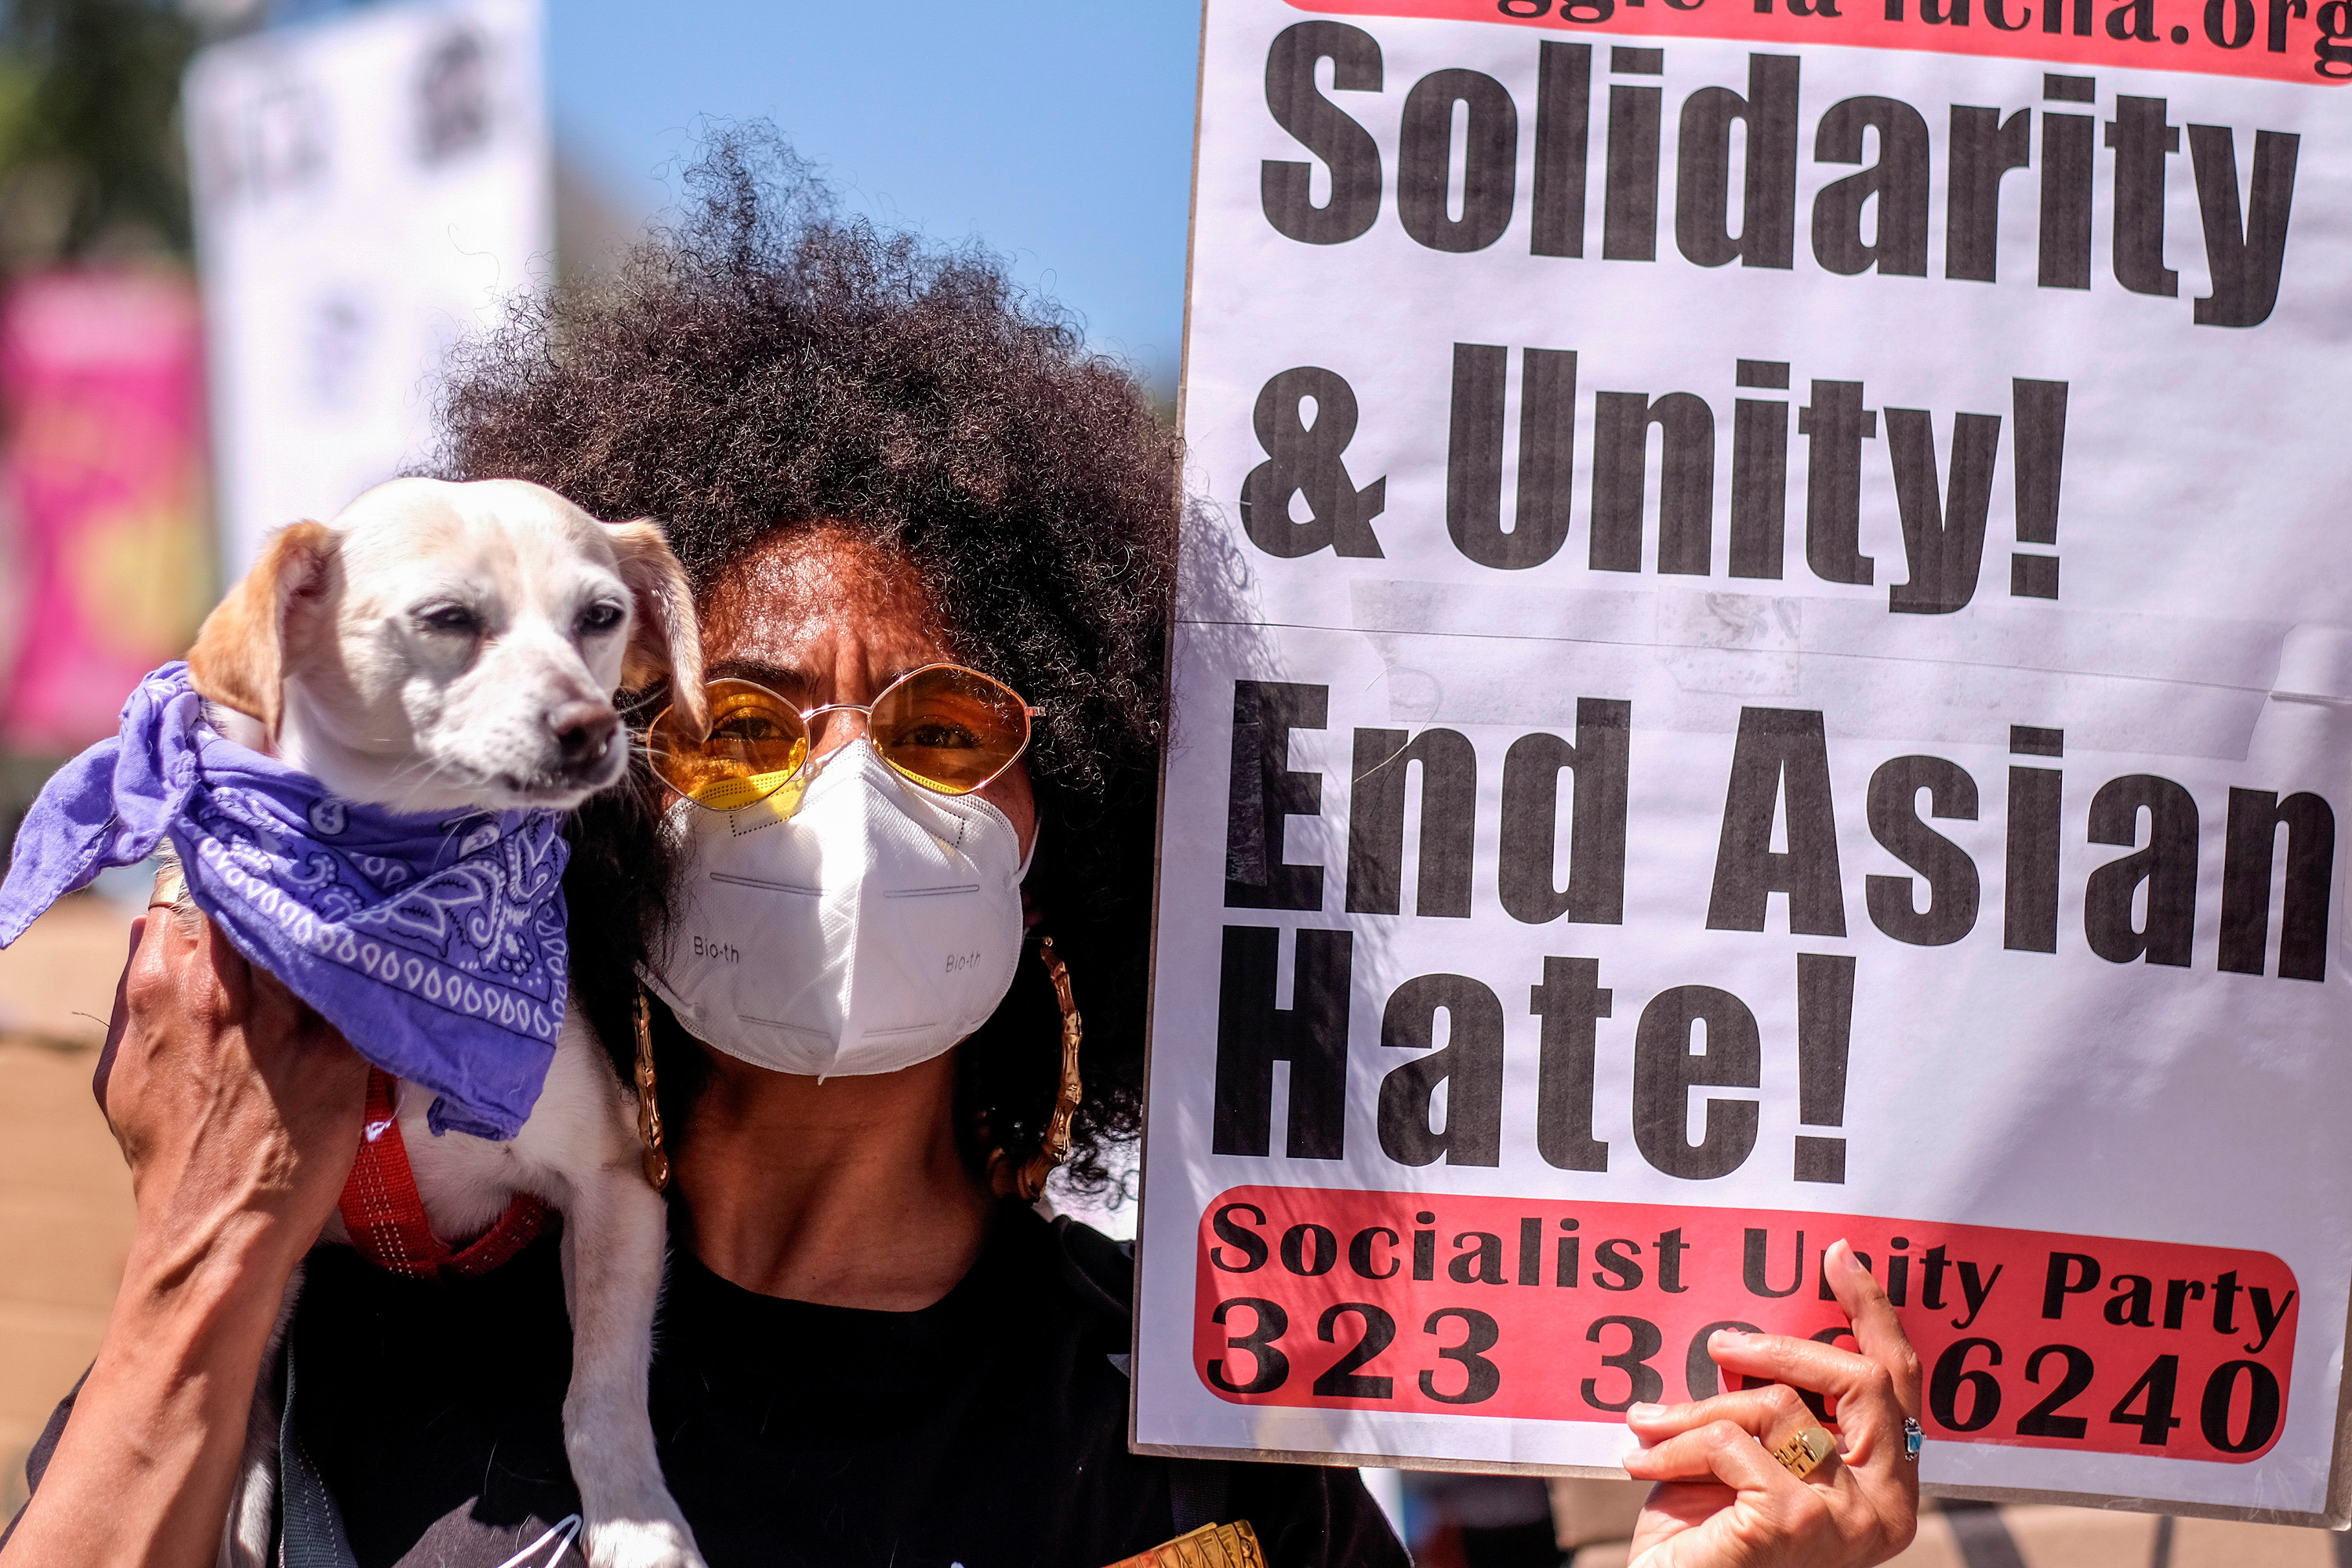 Rebecka Jackson, 35, holds her dog Sinba and a sign during a rally against anti-Asian hate crimes outside City Hall in Los Angeles, California, U.S. March 27, 2021. REUTERS/Ringo Chiu